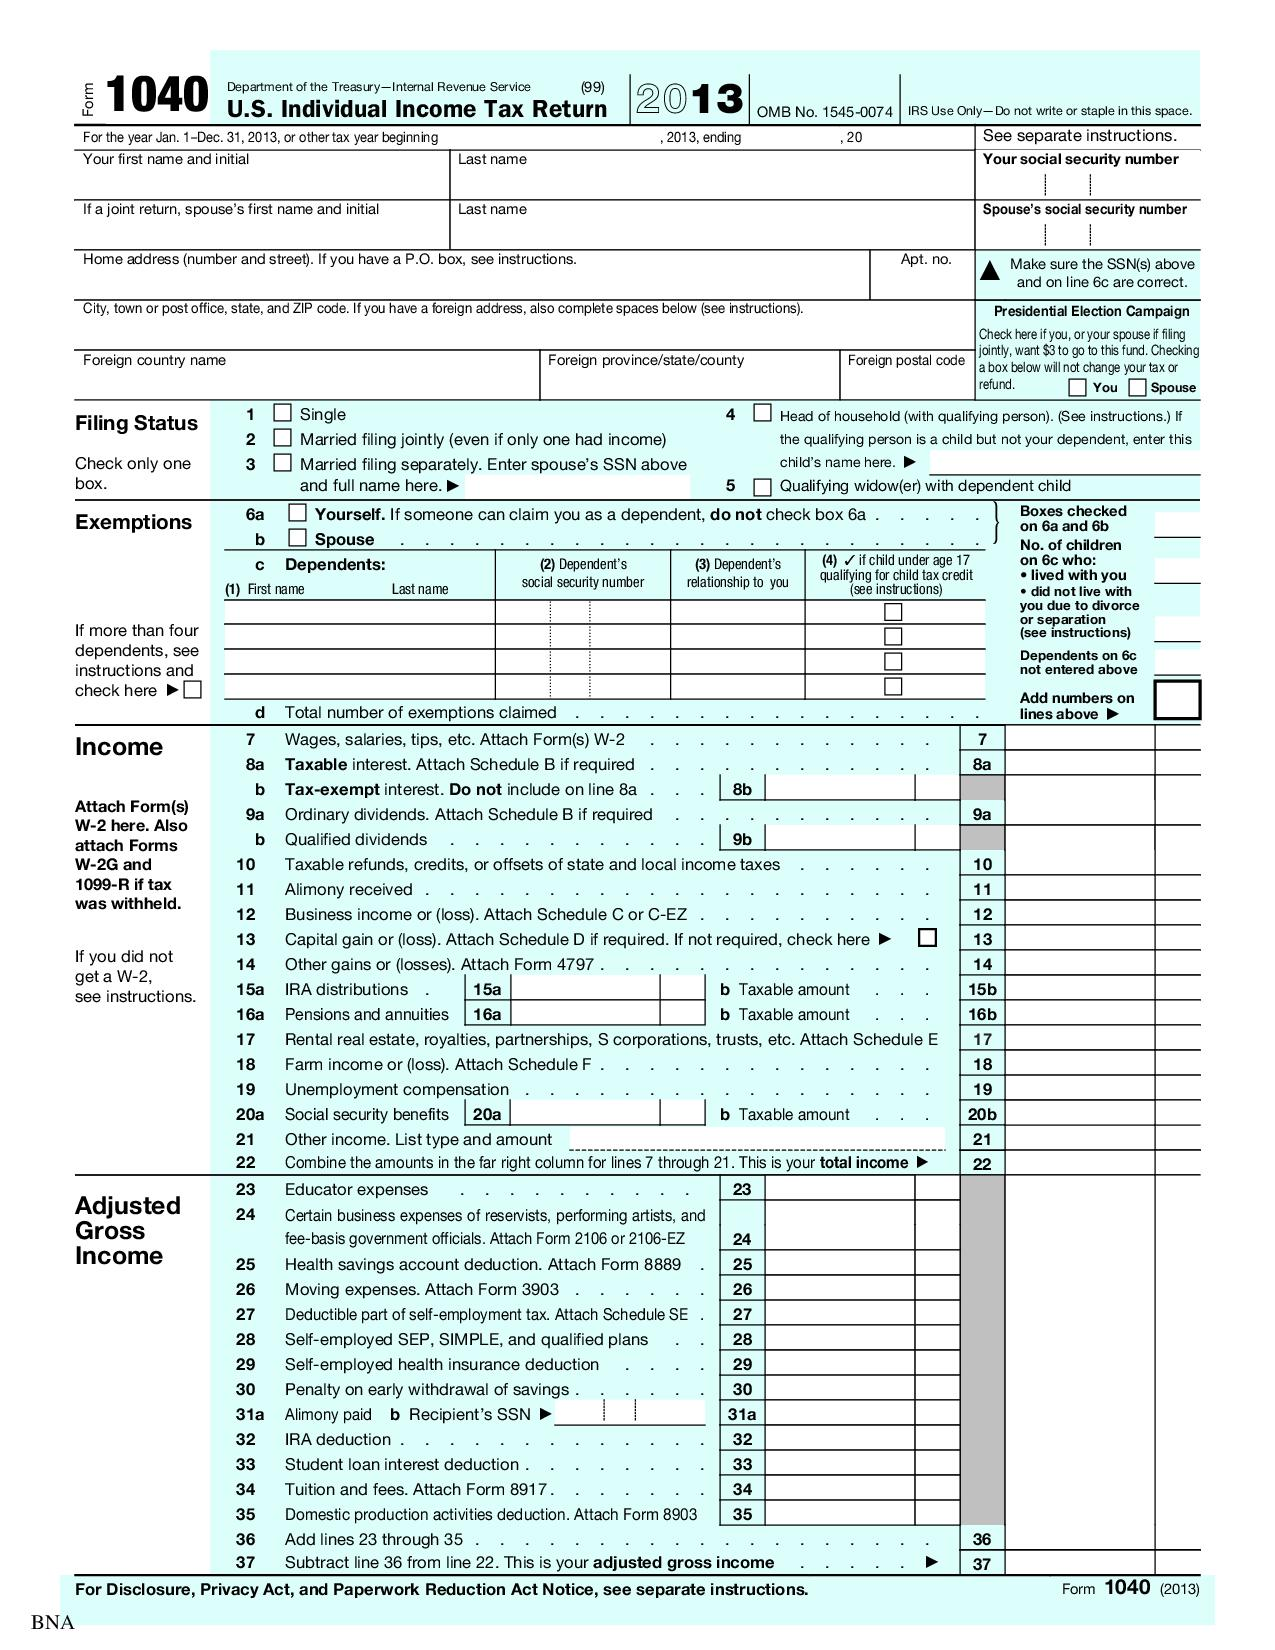 1040 u.s. individual income tax return with schedule c